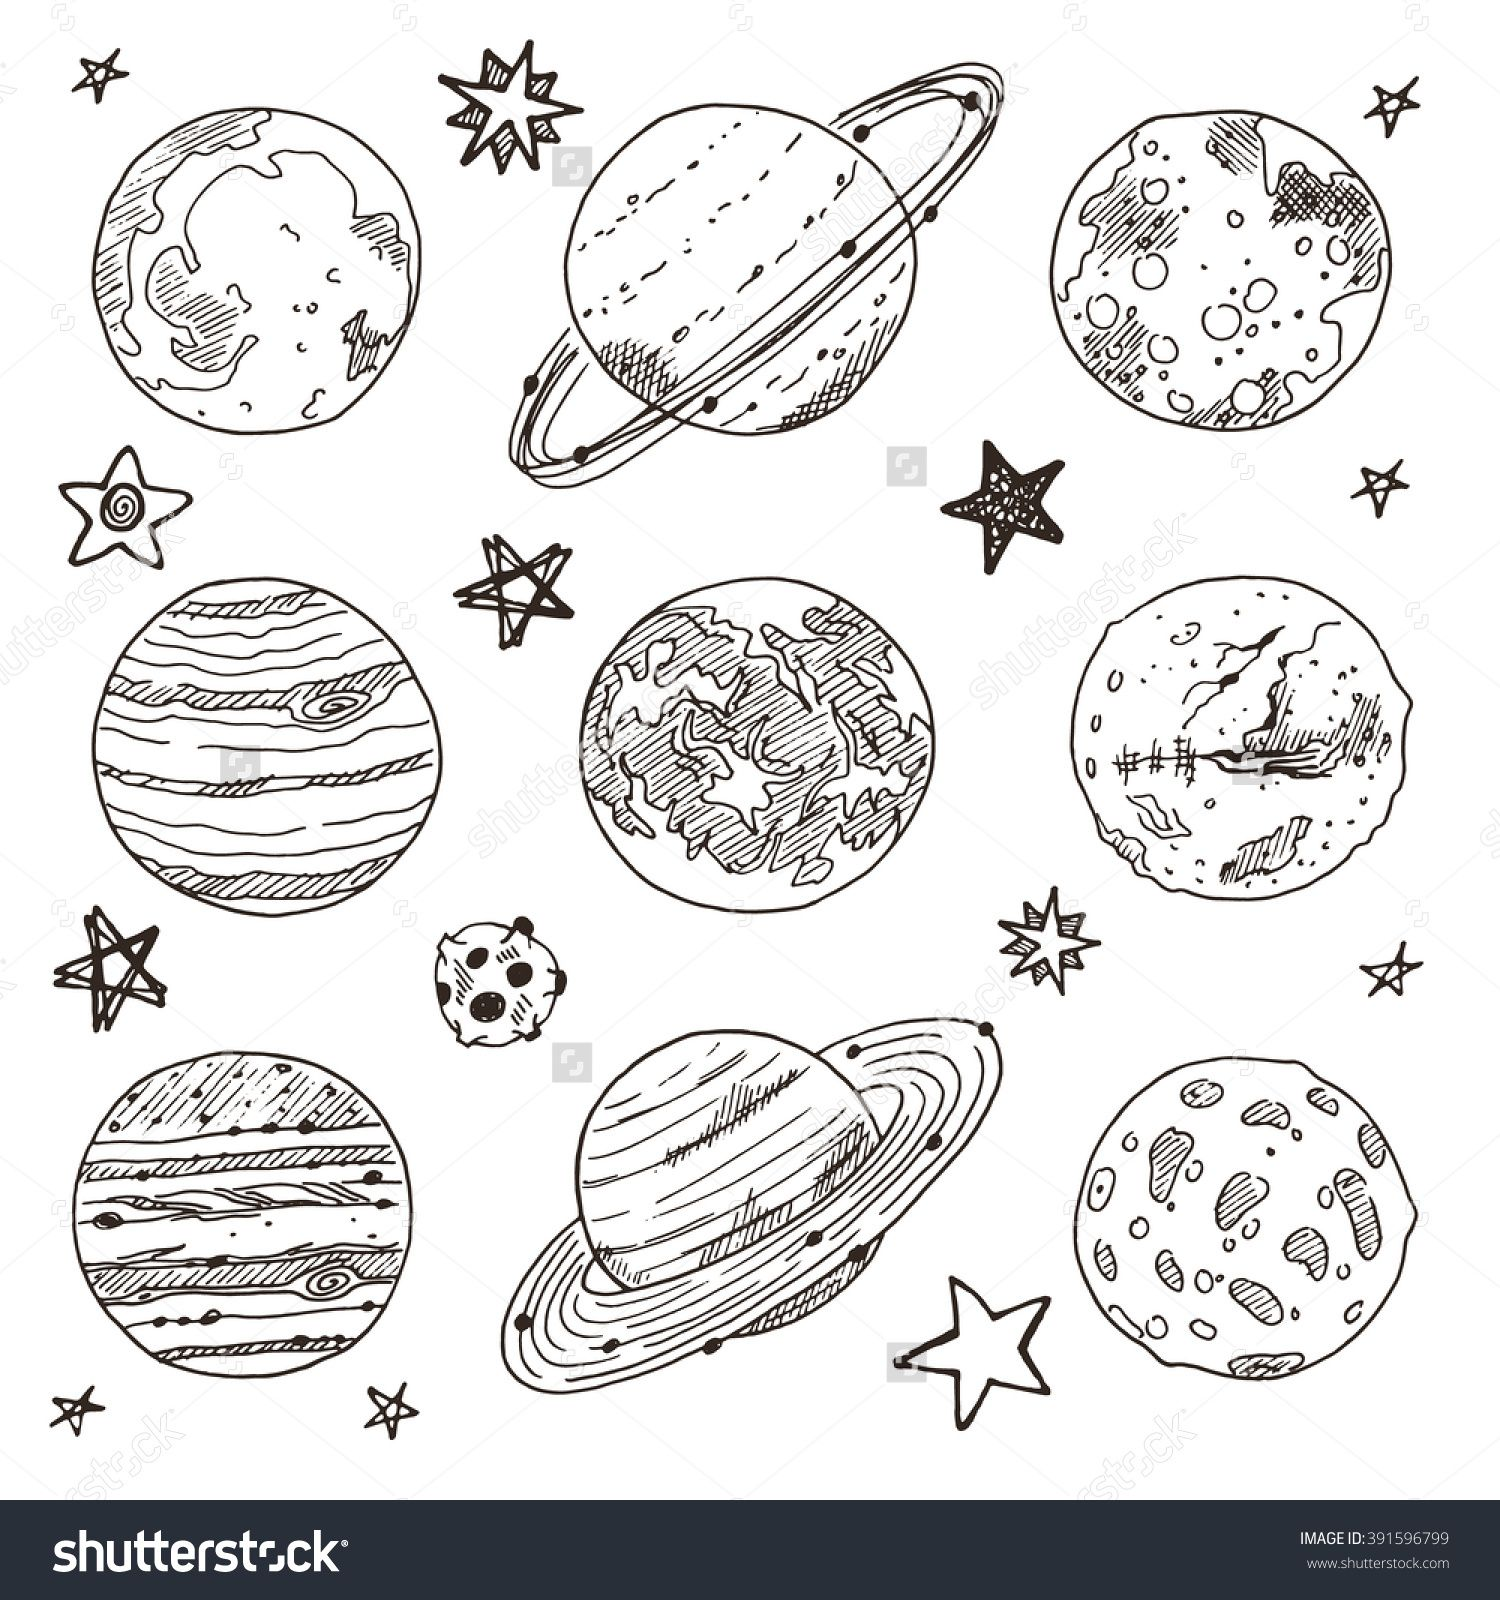 Planet vector space drawings science illustration hand illustration space planets cosmos